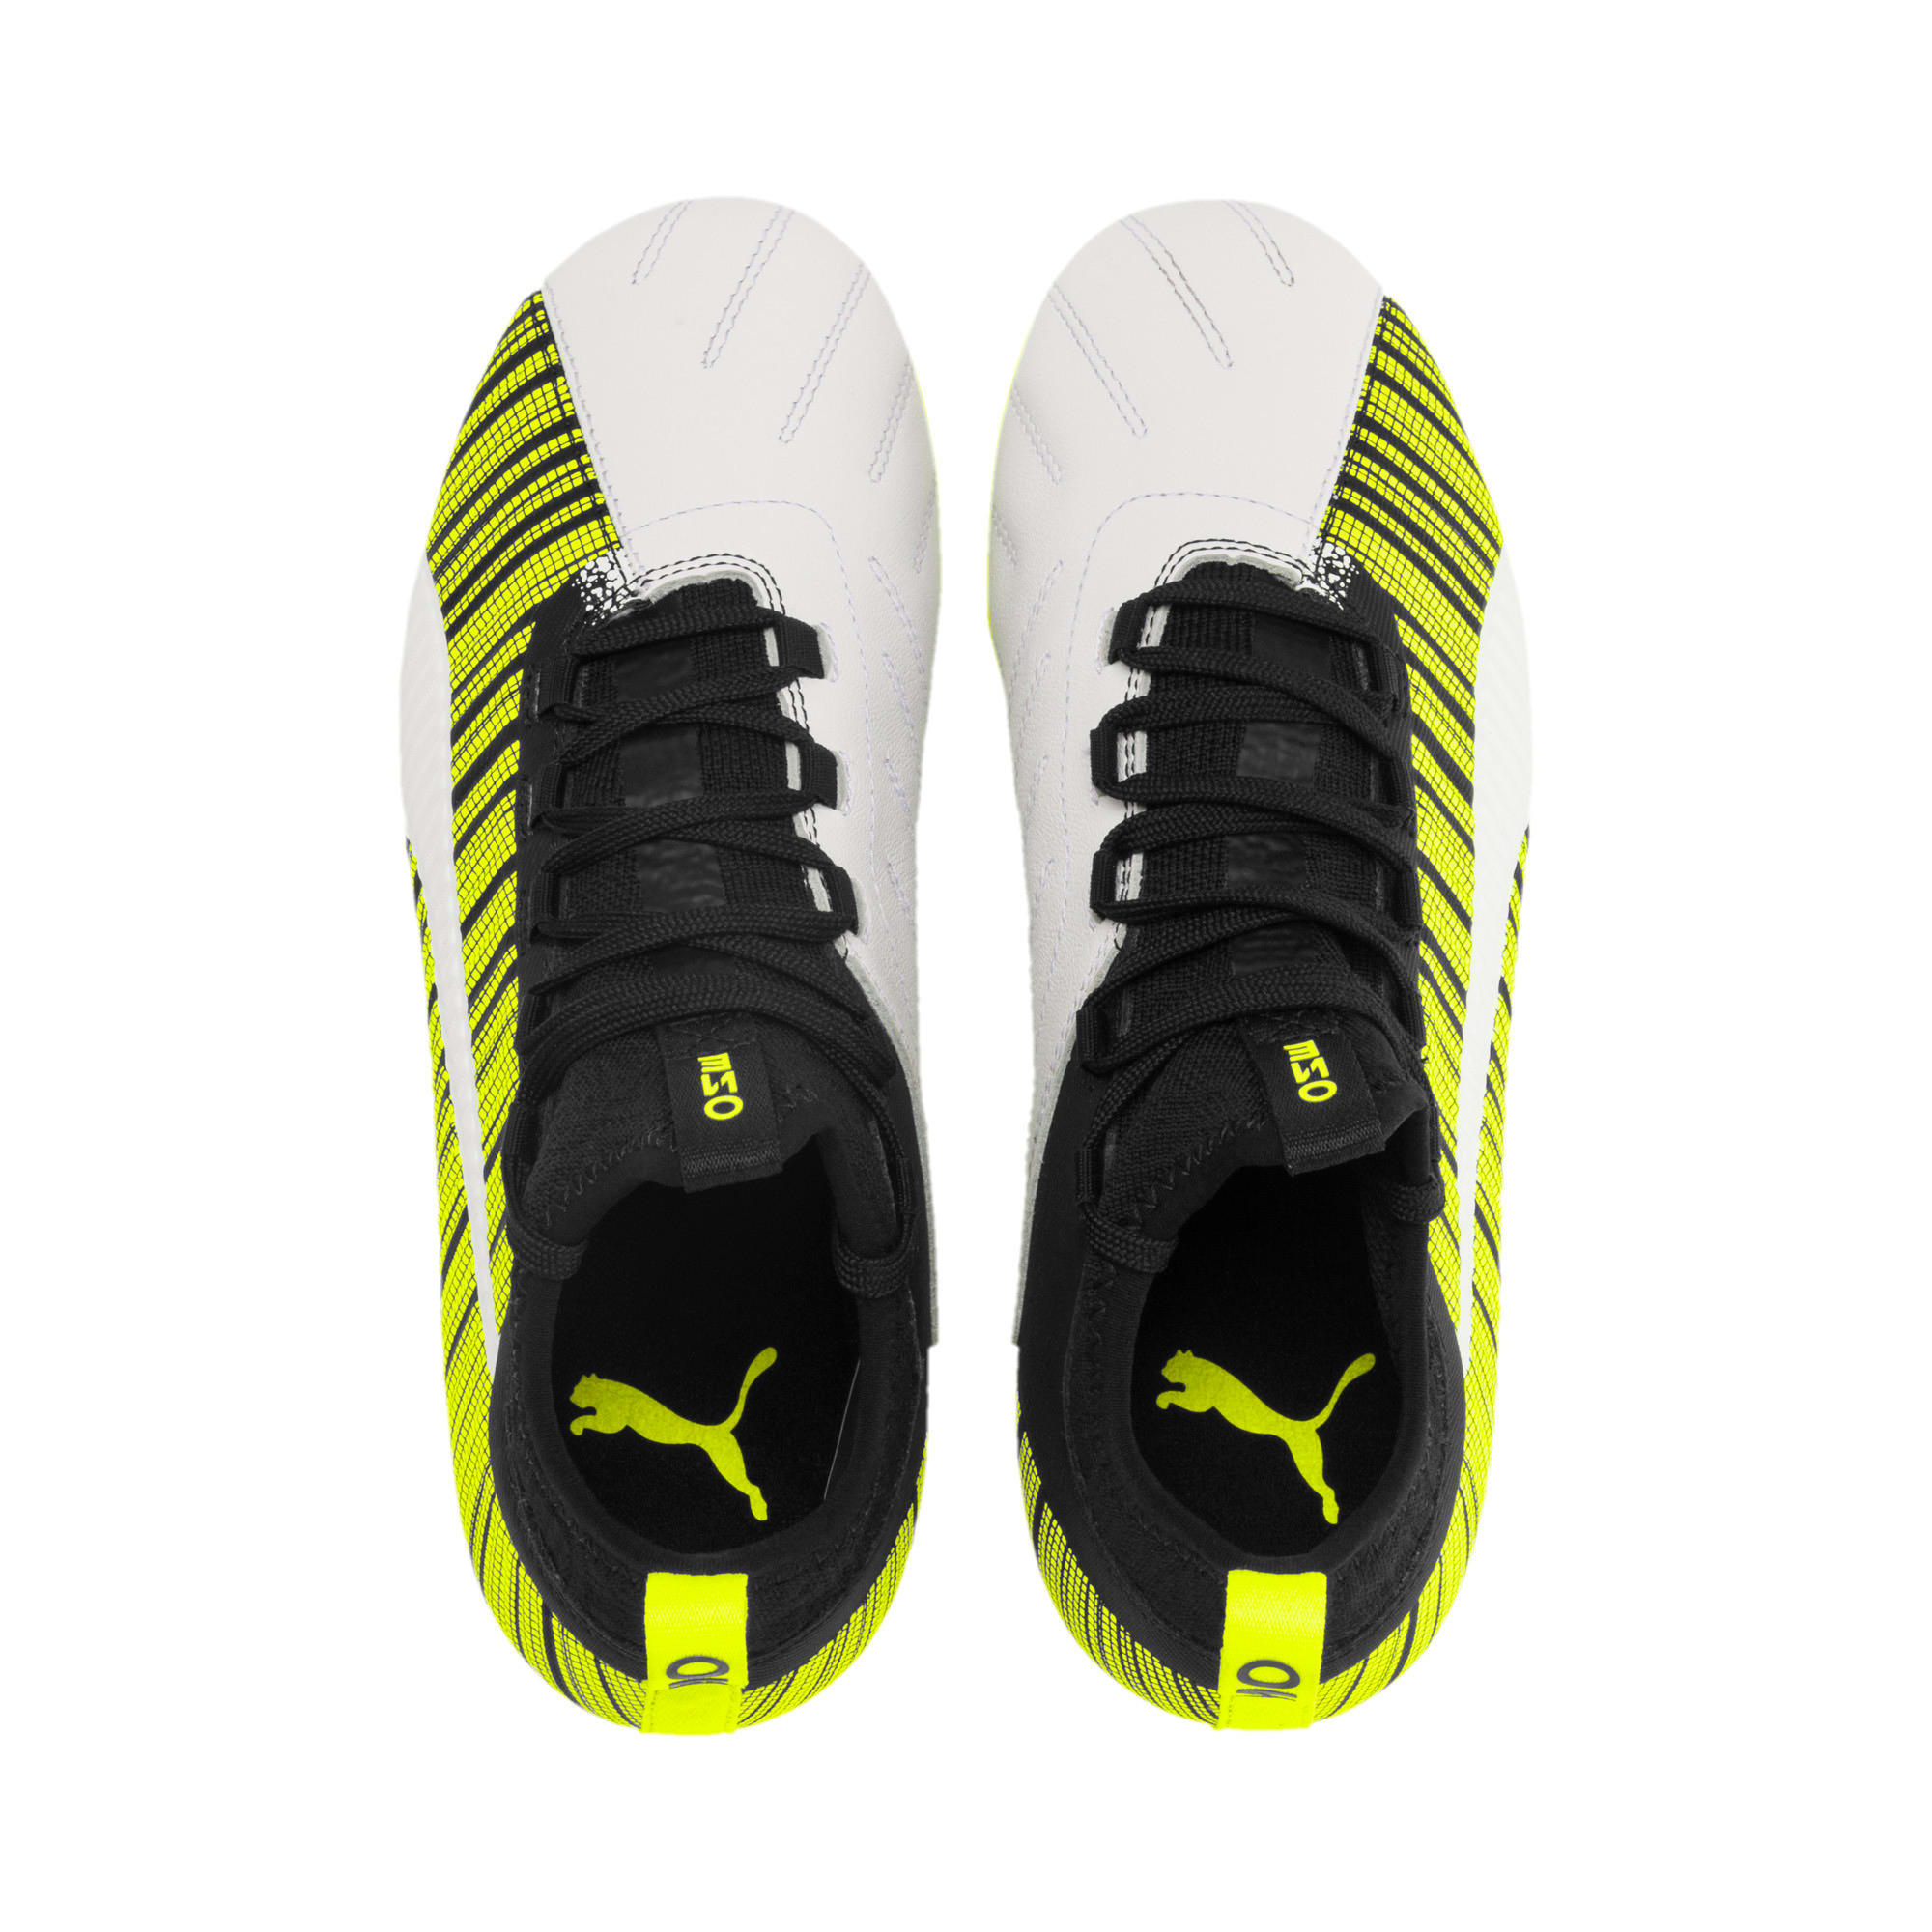 Thumbnail 6 of Chaussure de foot PUMA ONE 5.3 FG/AG Youth, White-Black-Yellow Alert, medium